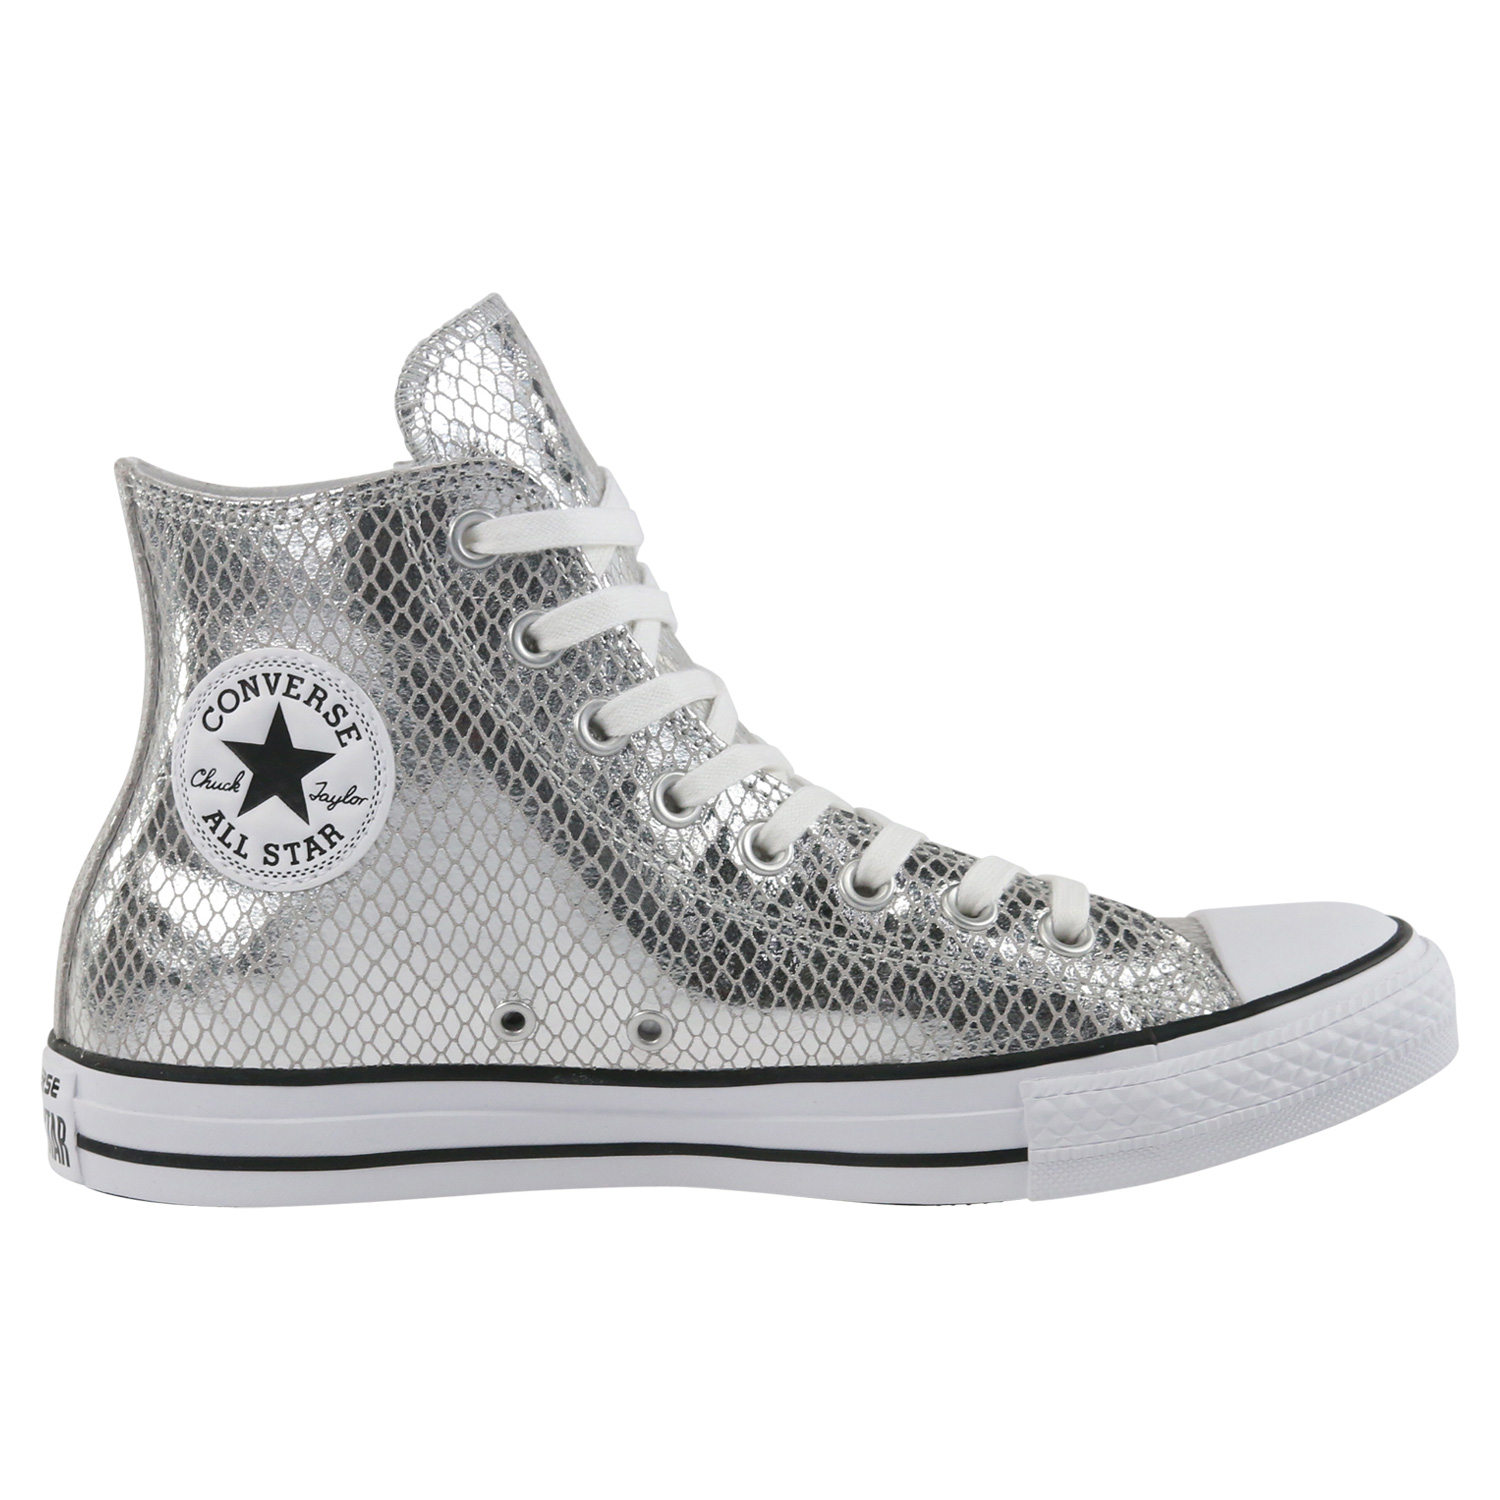 converse chuck taylor all star leather schuhe turnschuhe. Black Bedroom Furniture Sets. Home Design Ideas